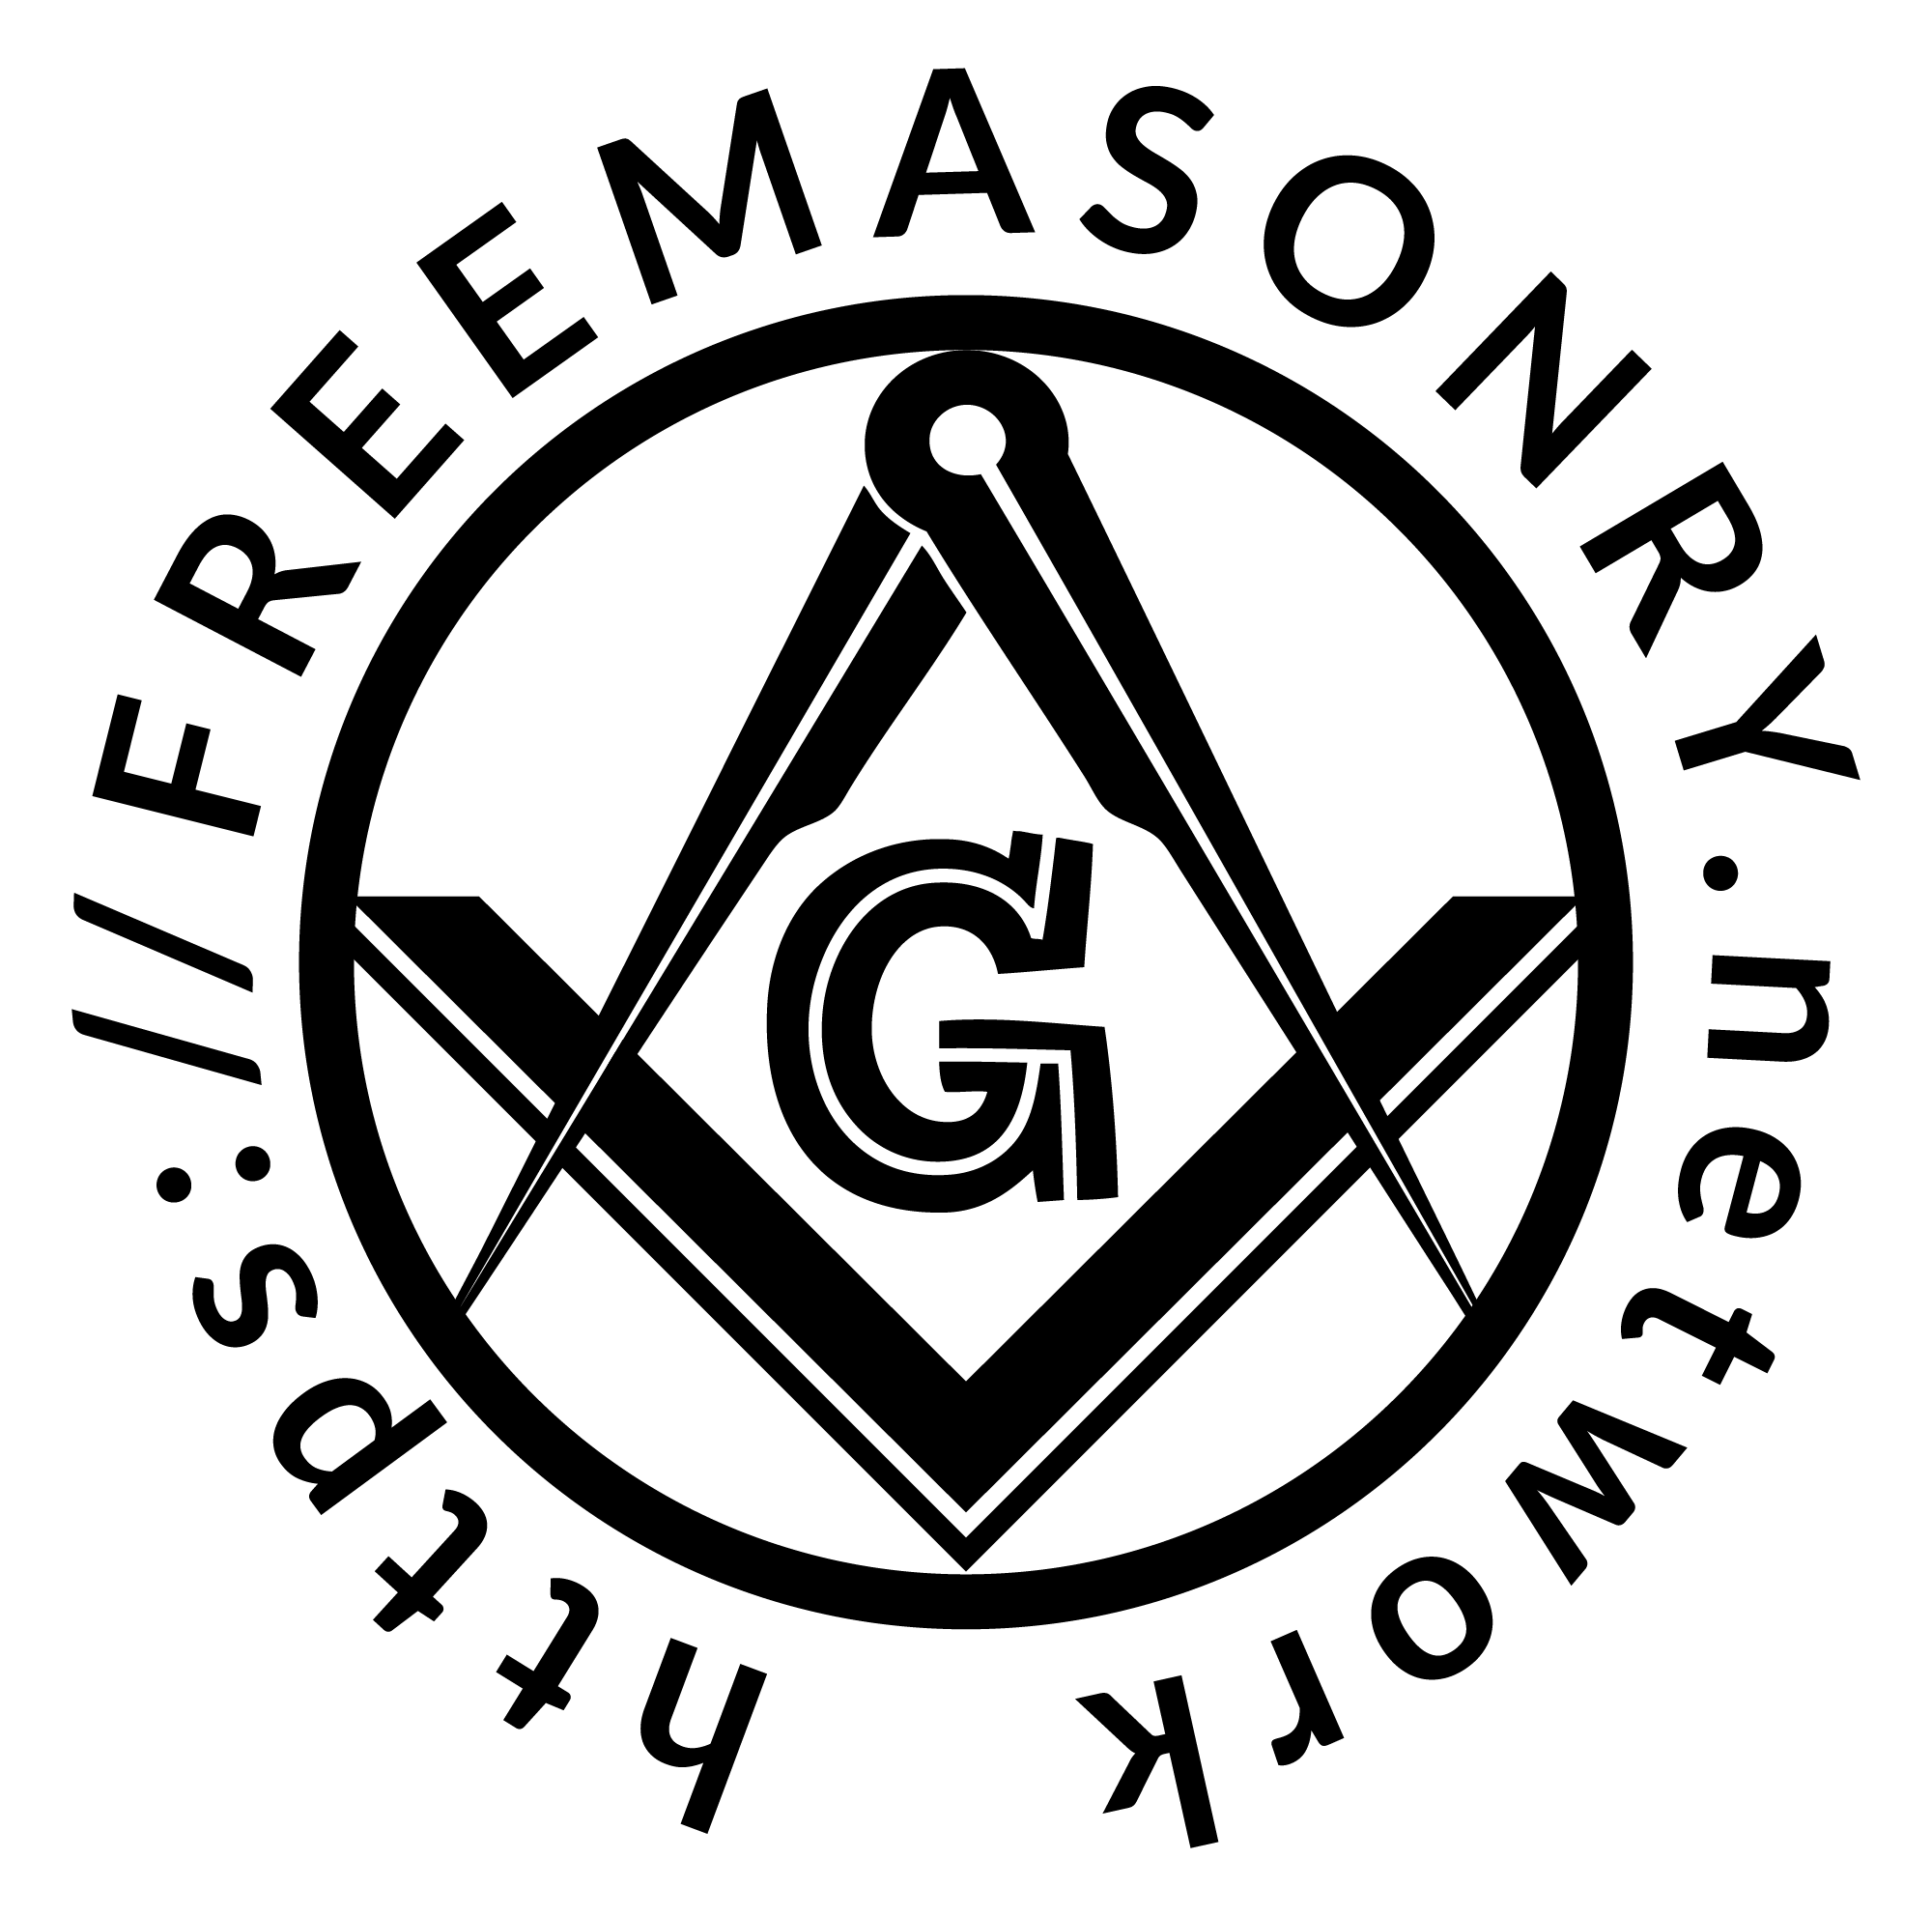 Freemasonry in Europe, European Freemasonry